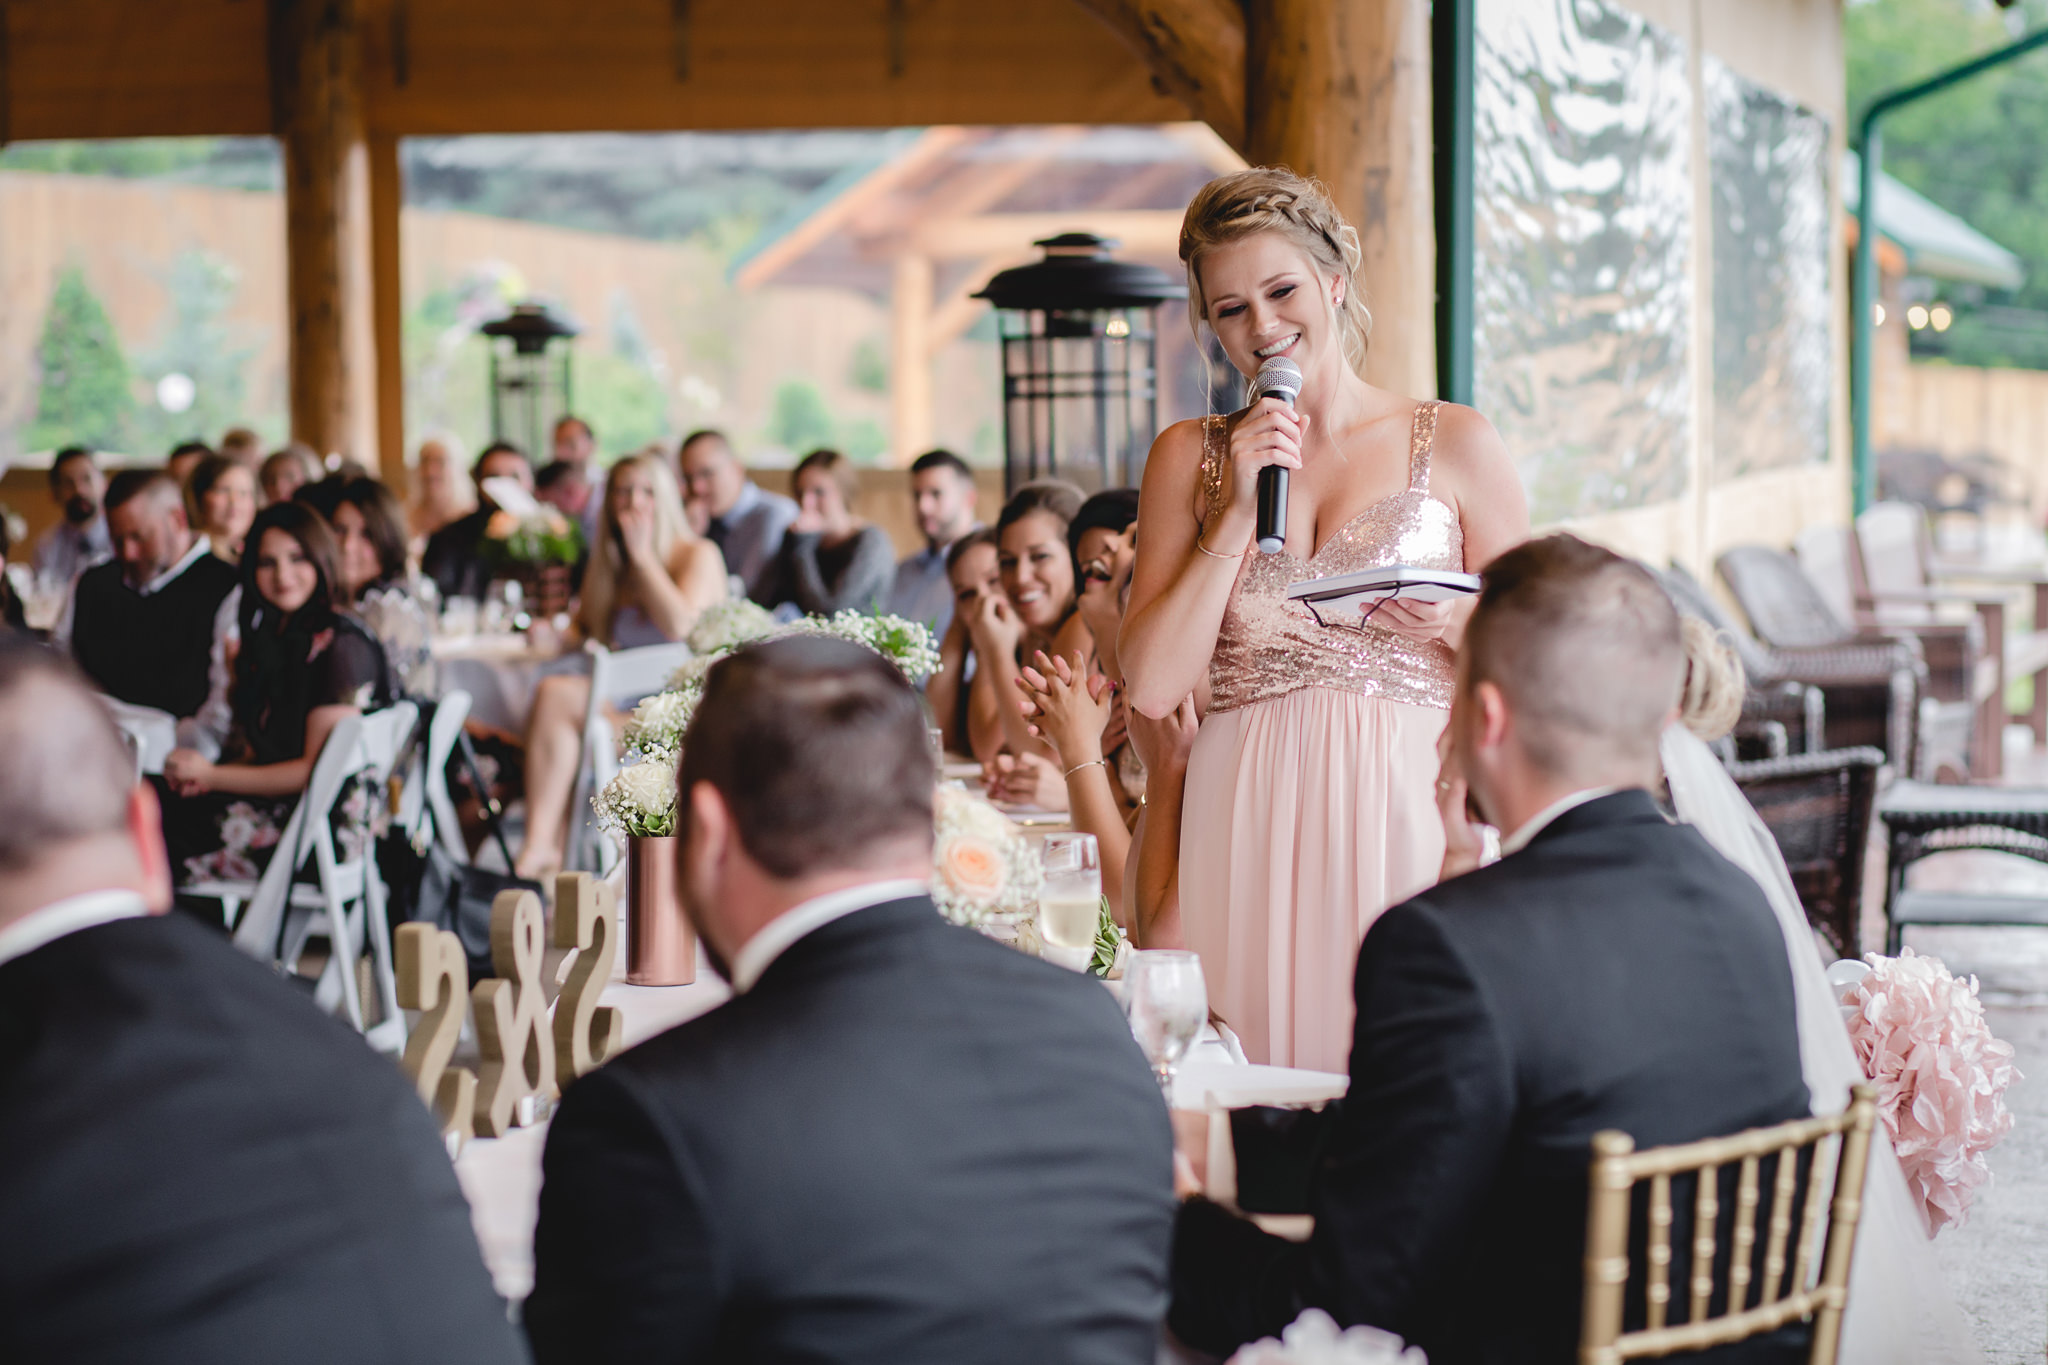 Maid of honor toasts the newlyweds at the Gathering Place at Darlington Lake